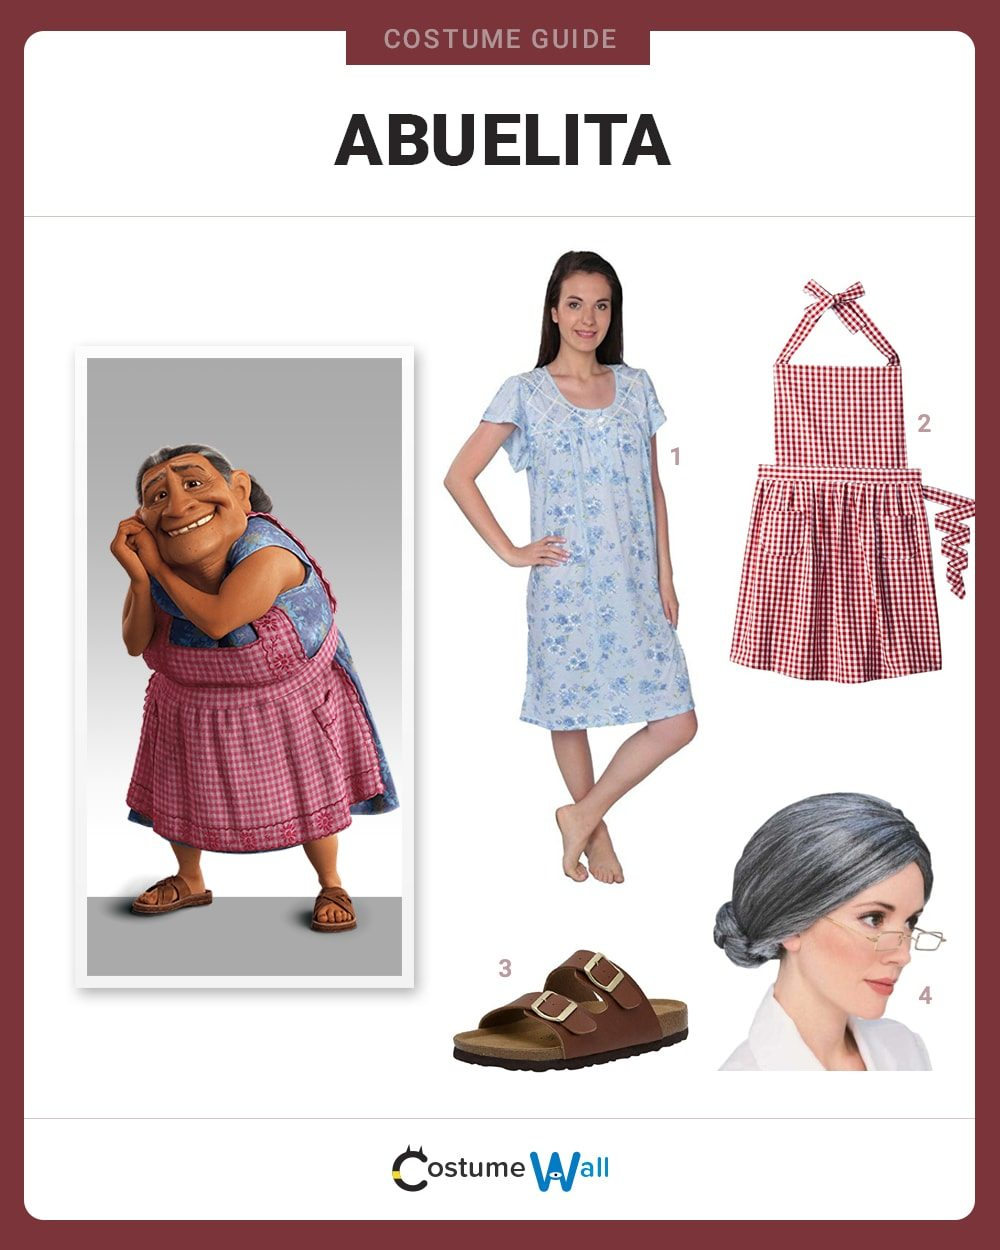 Abuelita Costume Guide